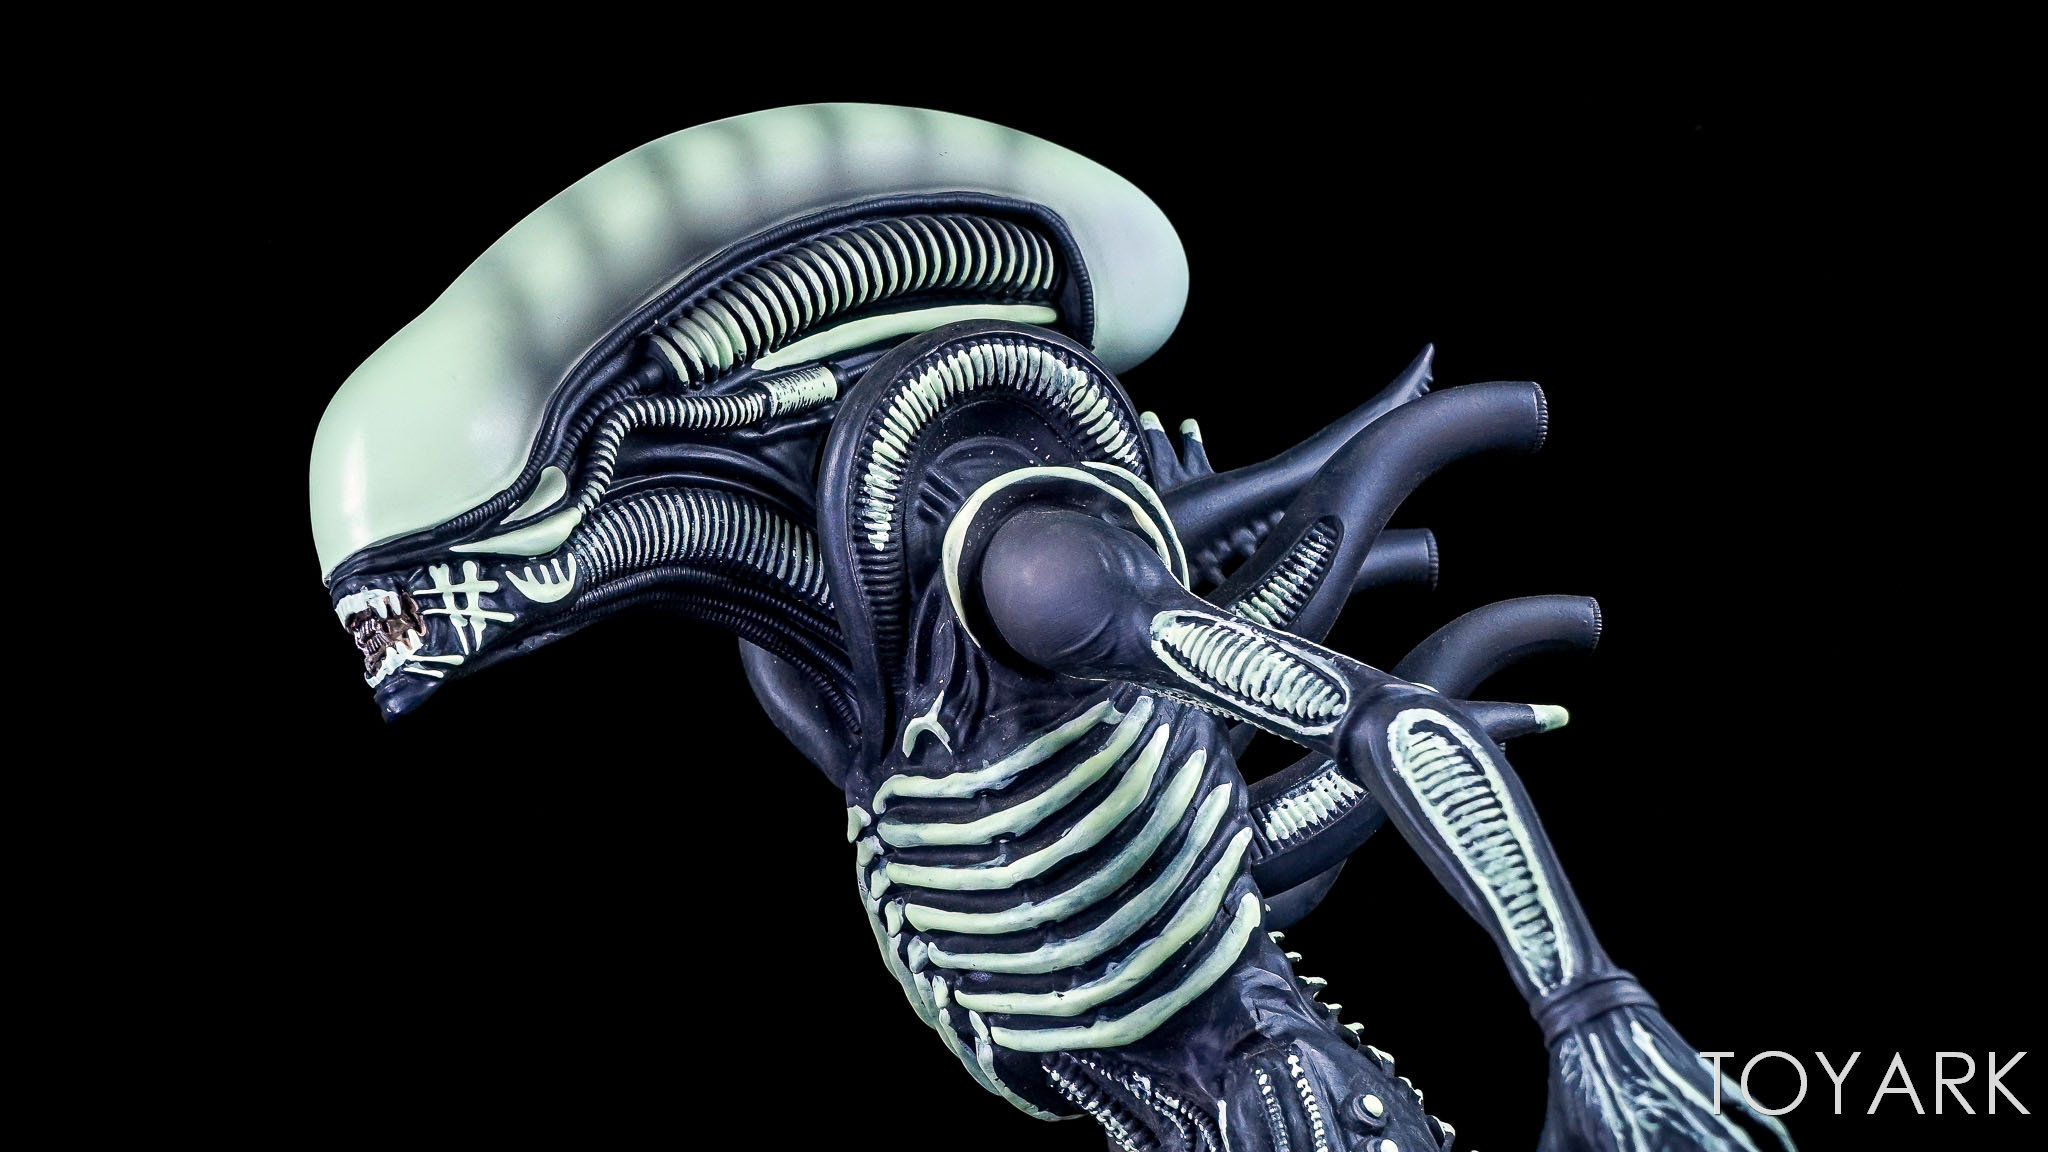 http://news.toyark.com/wp-content/uploads/sites/4/2017/12/Eaglemoss-Glow-in-the-Dark-Alien-Statue-013.jpg